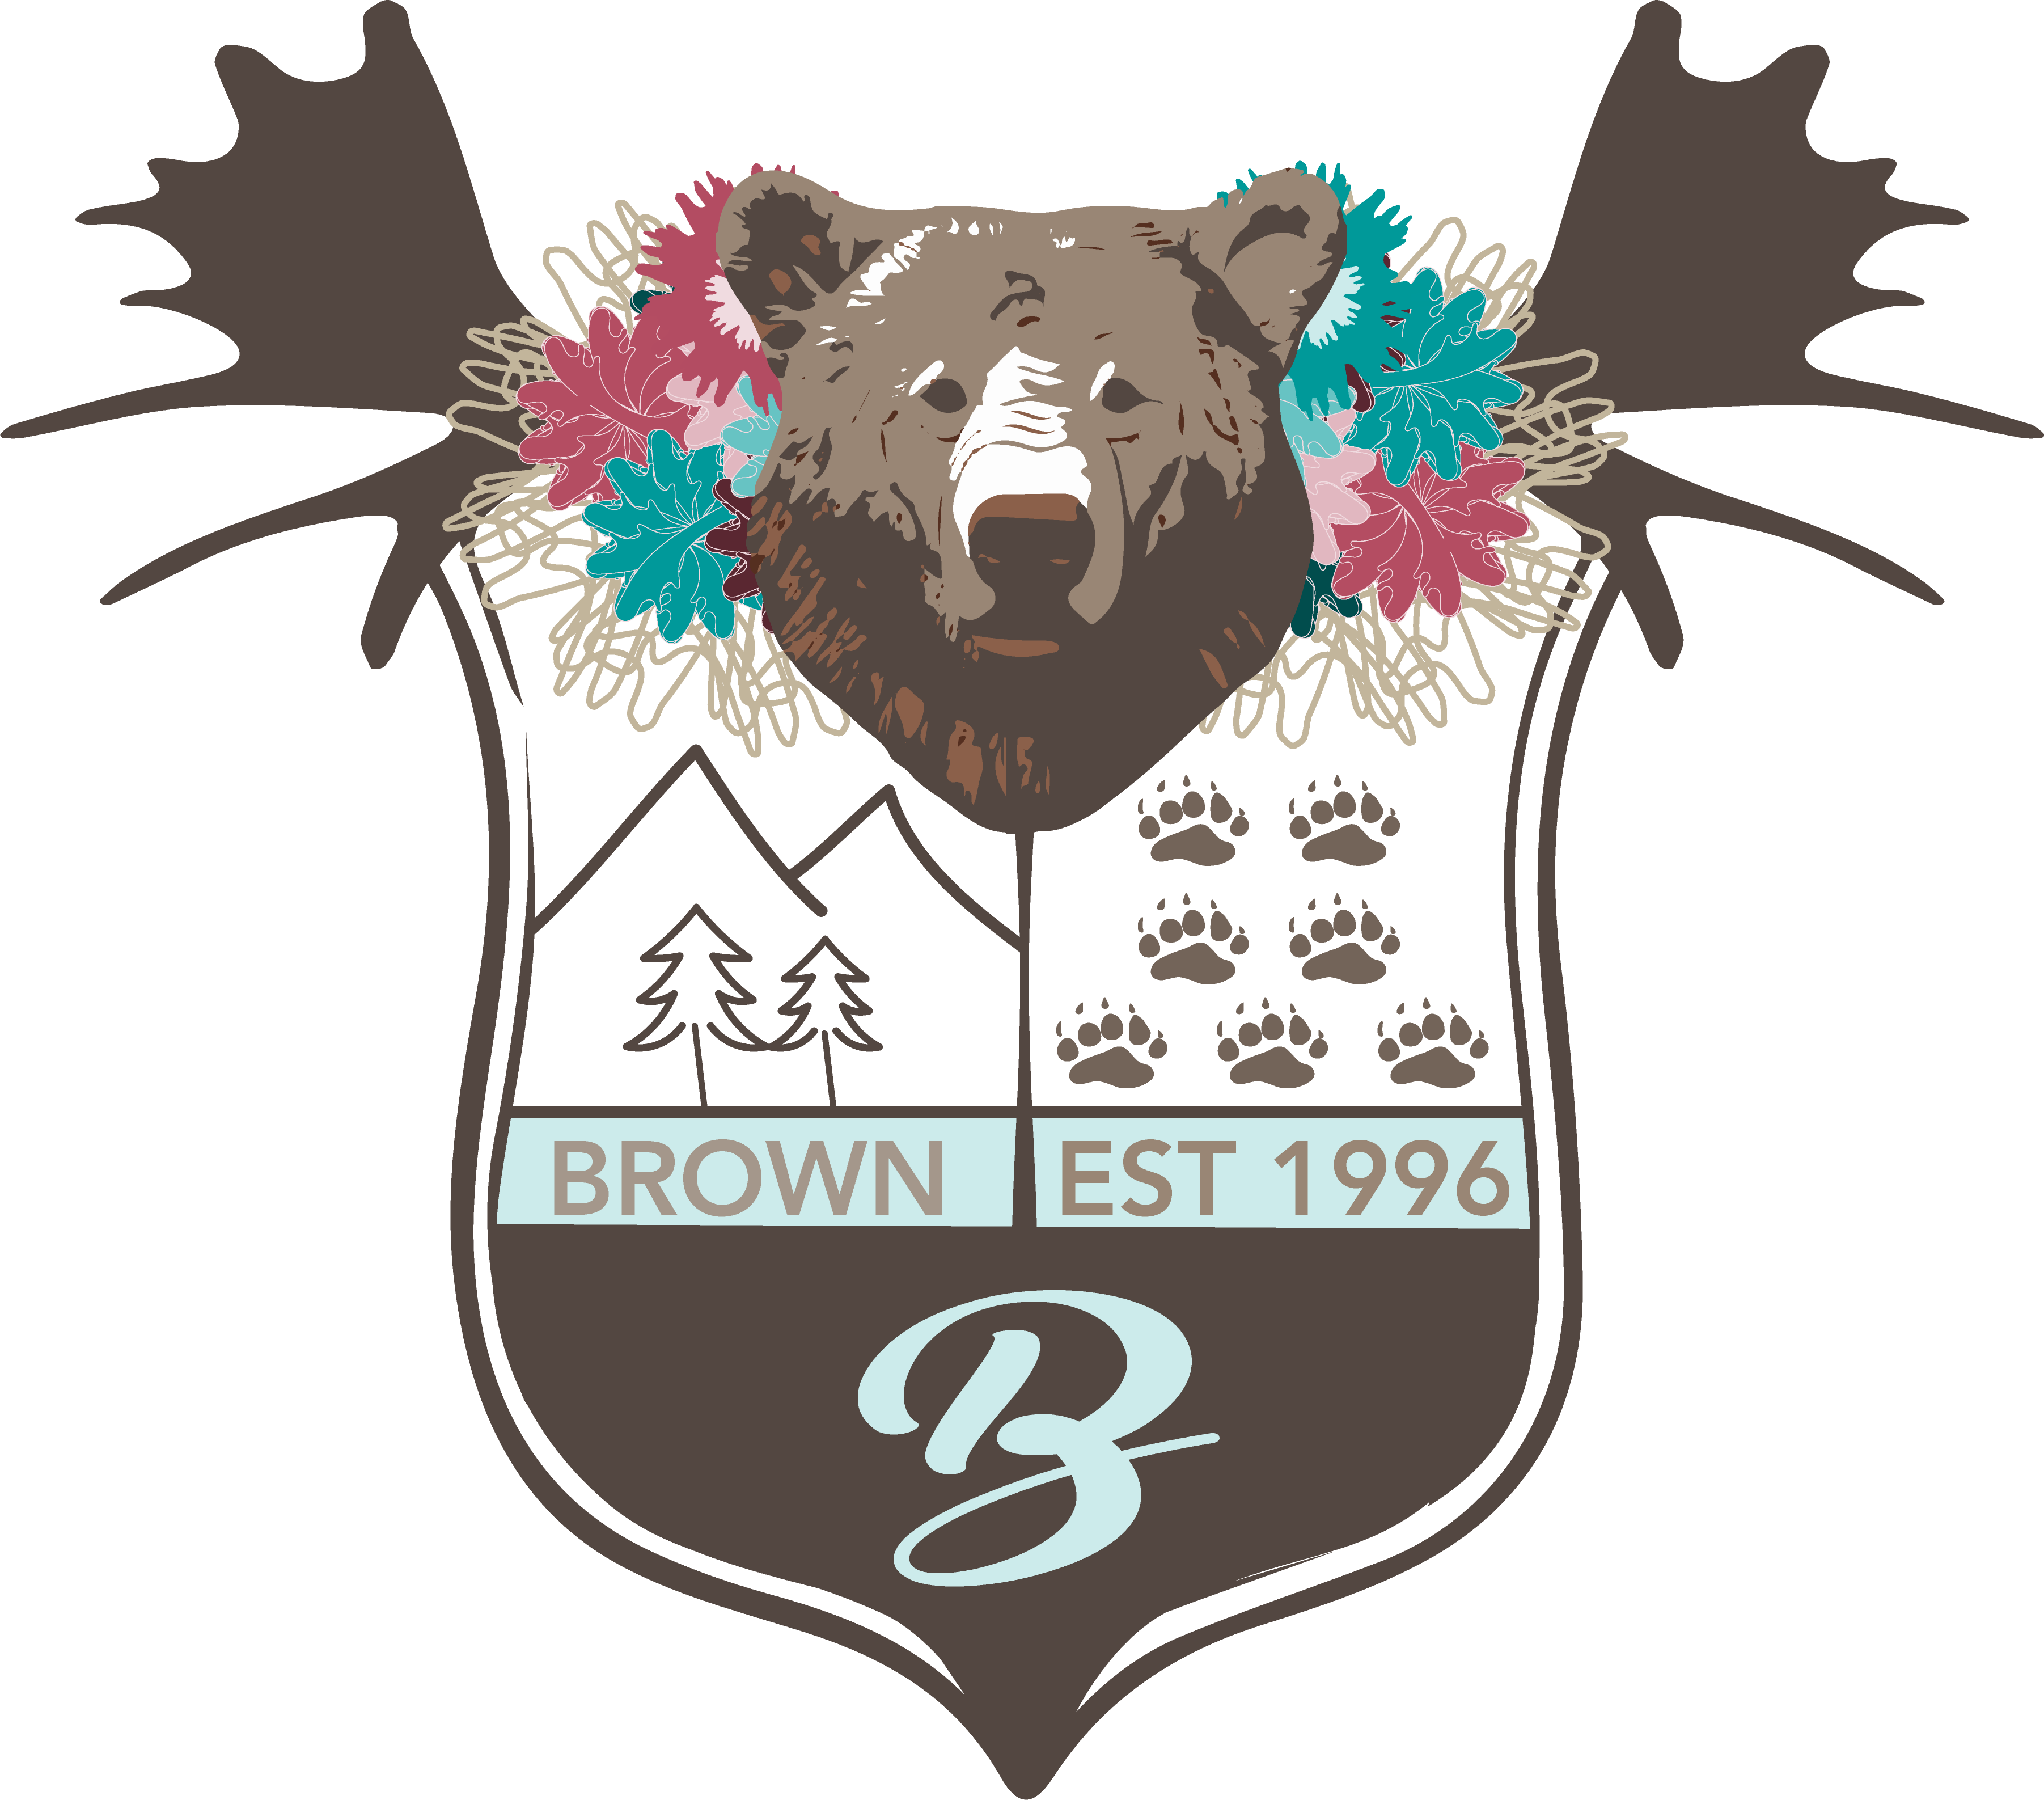 graphic freeuse stock Family created by brown. Vector crest modern